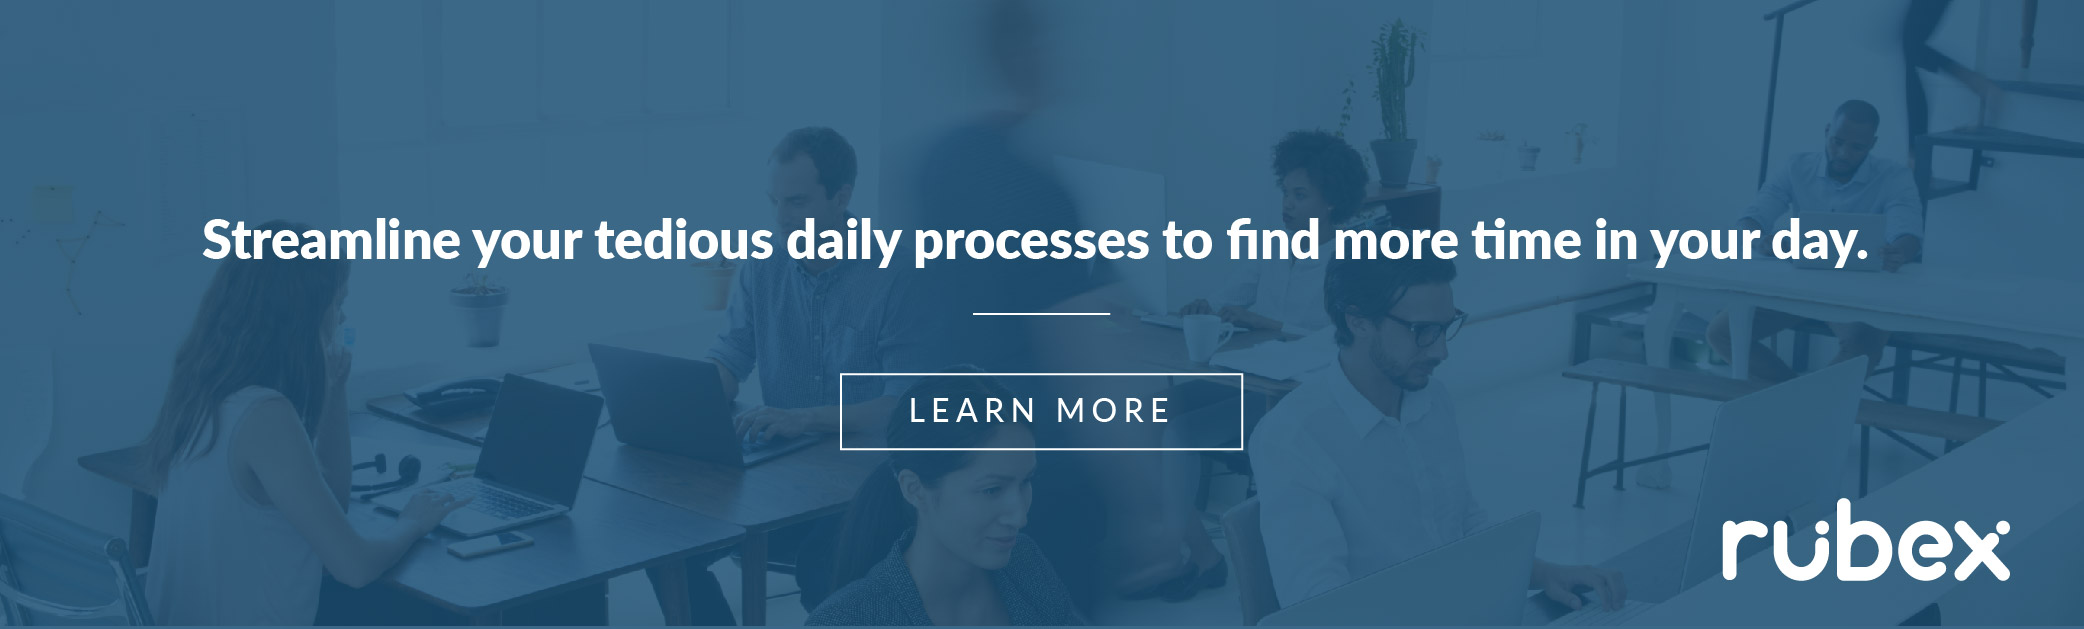 streamline your tedious daily tasks - learn more